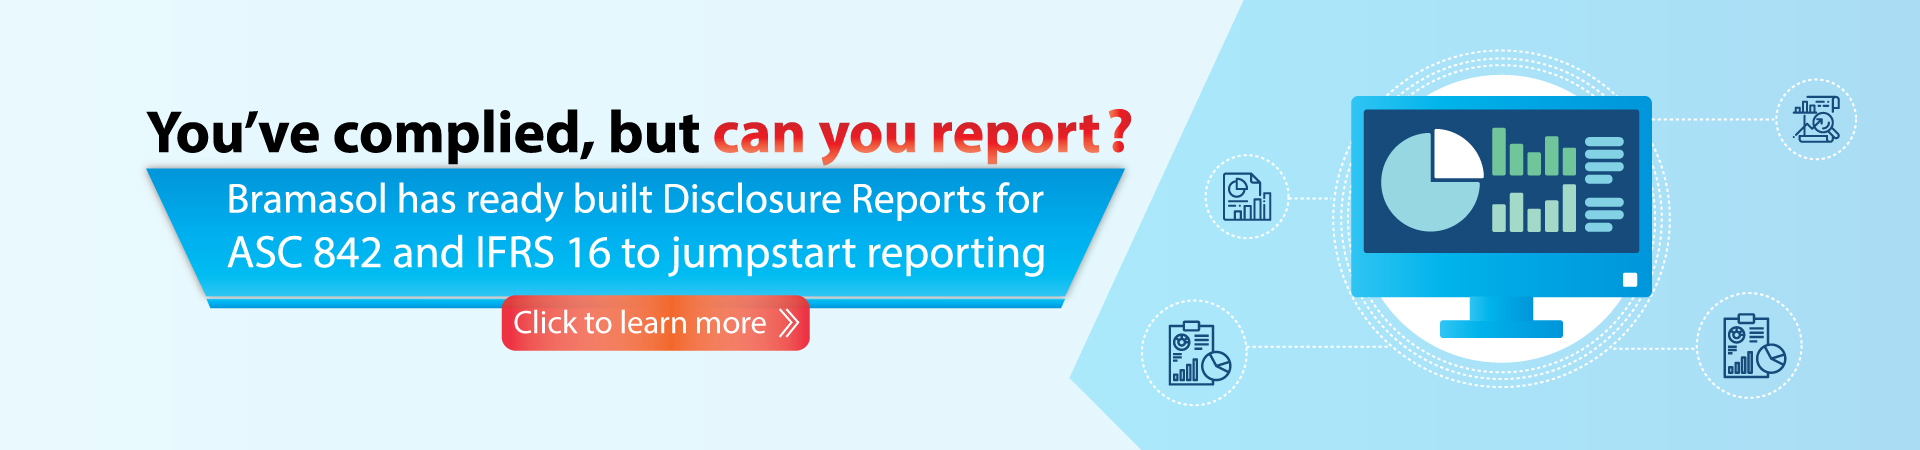 Watch Bramasol's webinar on disclosure reporting for ASC 842 and IFRS 16